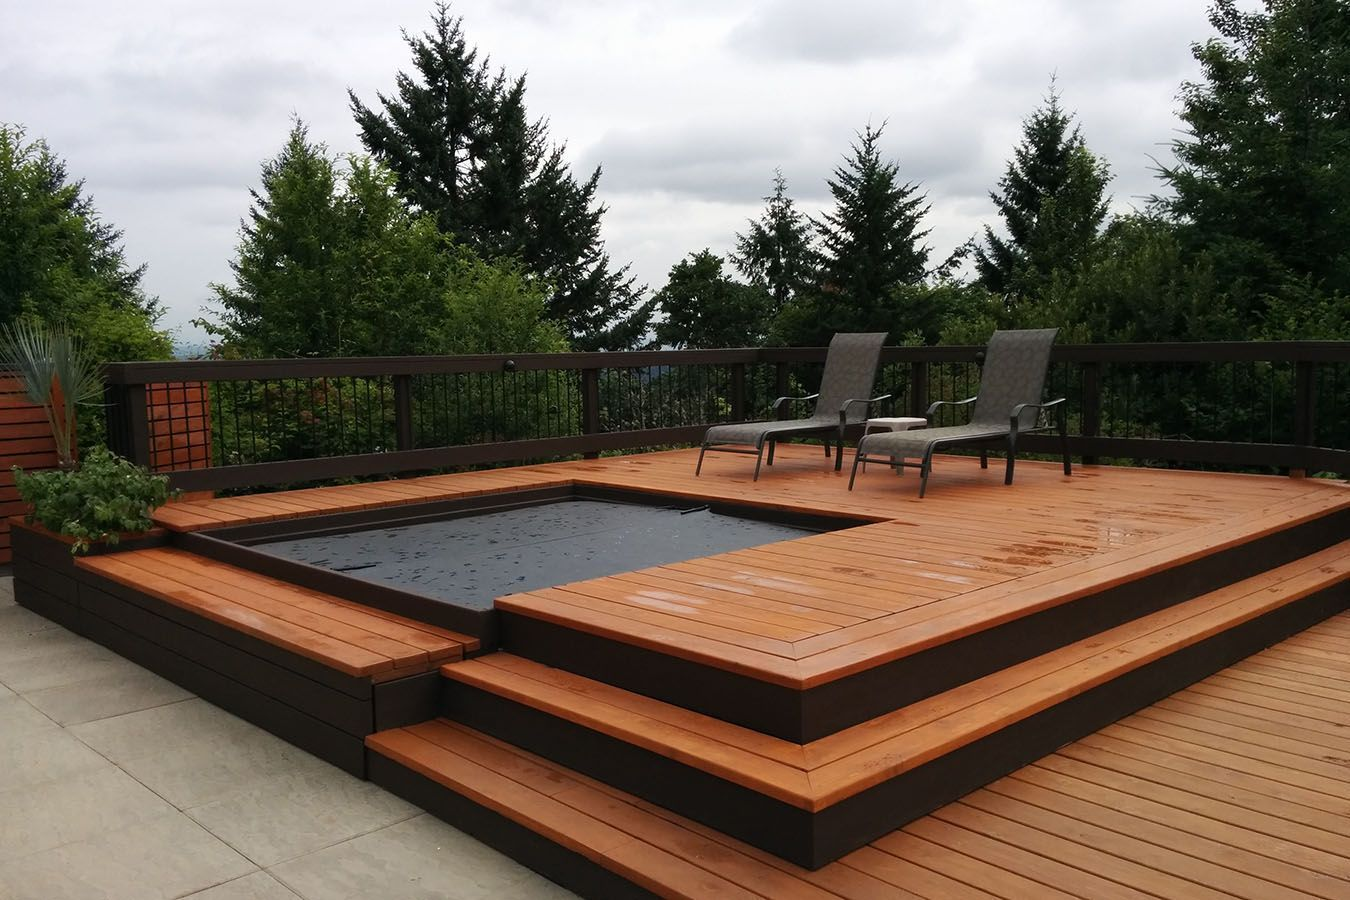 Image Result For Modern Hot Tub Modern Hot Tubs Pool Hot Tub Hot Tub Landscaping Modern patio with hot tub